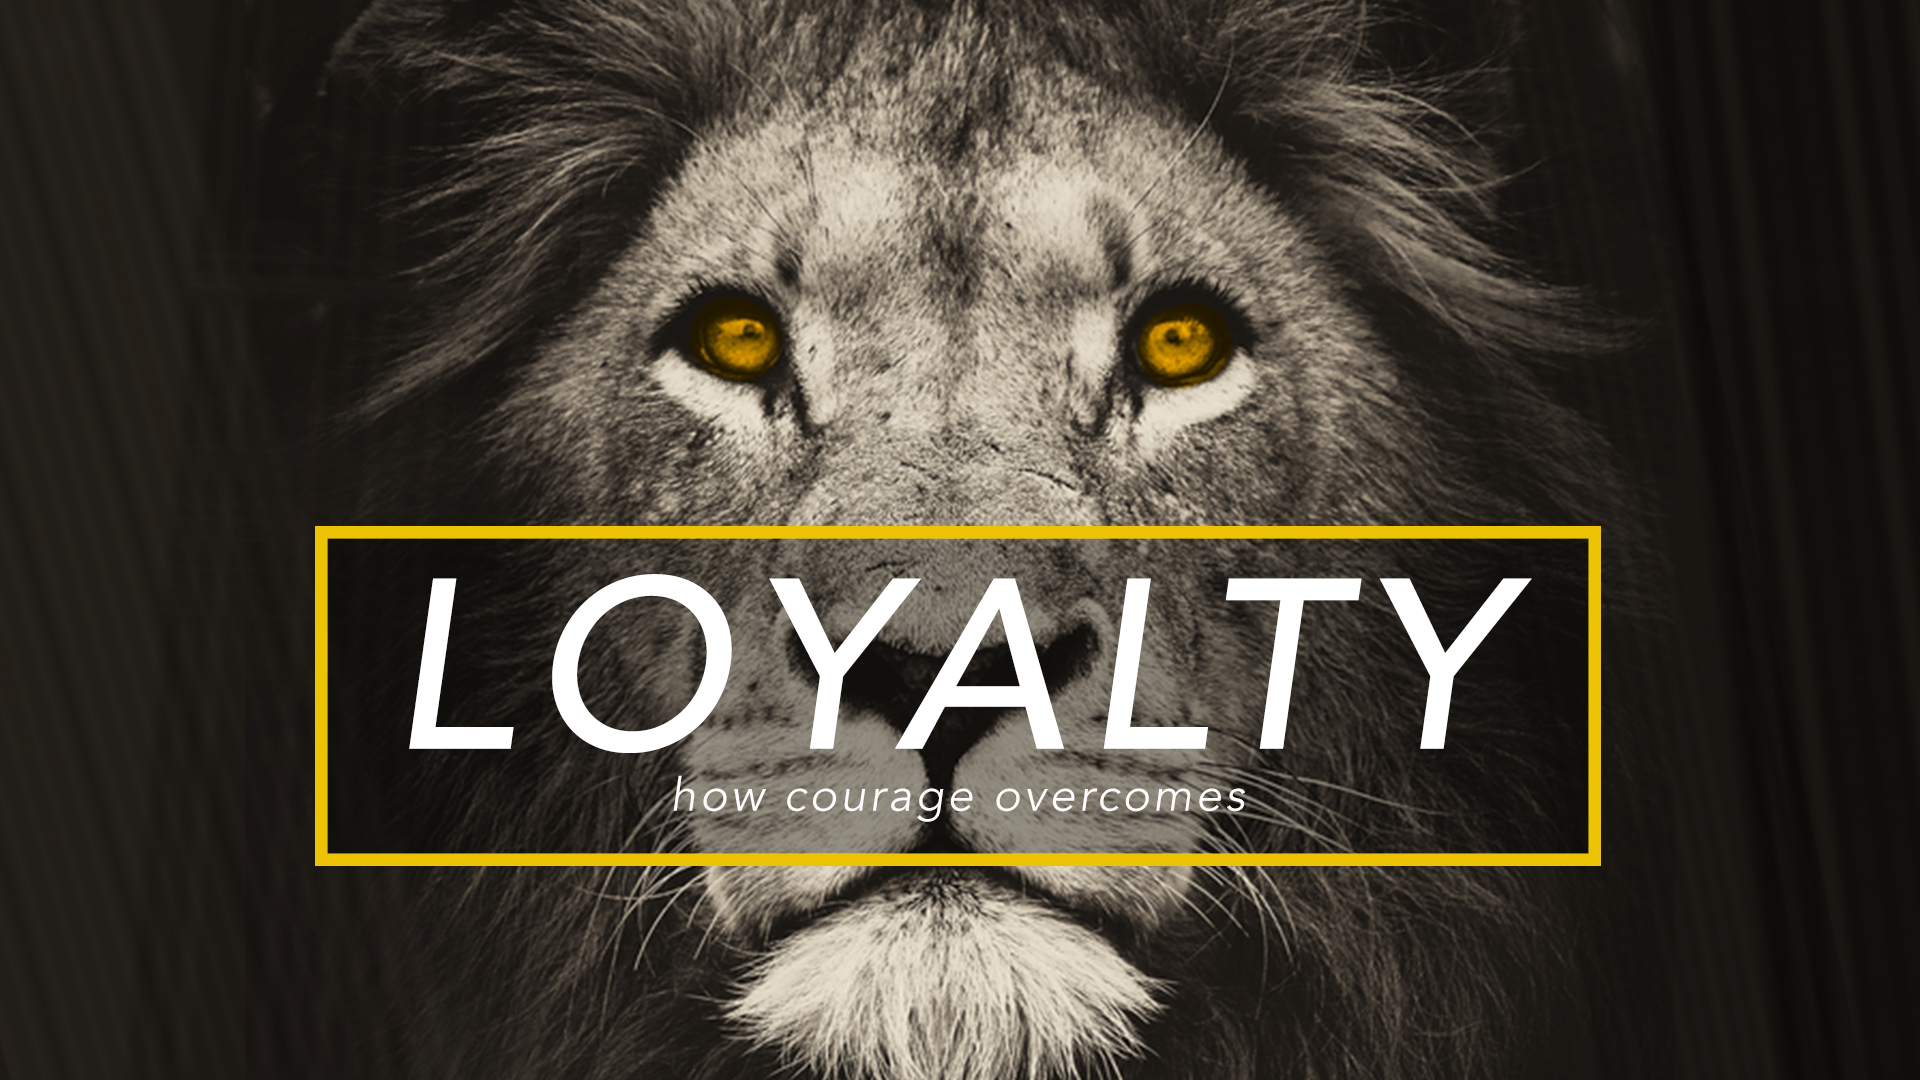 loyalty and friendship journeys end Loyalty, in general use, is a devotion and faithfulness to a nation, cause, philosophy, country, group, or person philosophers disagree on what can be an object of loyalty, as some argue that loyalty is strictly interpersonal and only another human being can be the object of loyalty the definition of loyalty in law and political science is the fidelity of an individual to a nation, either.